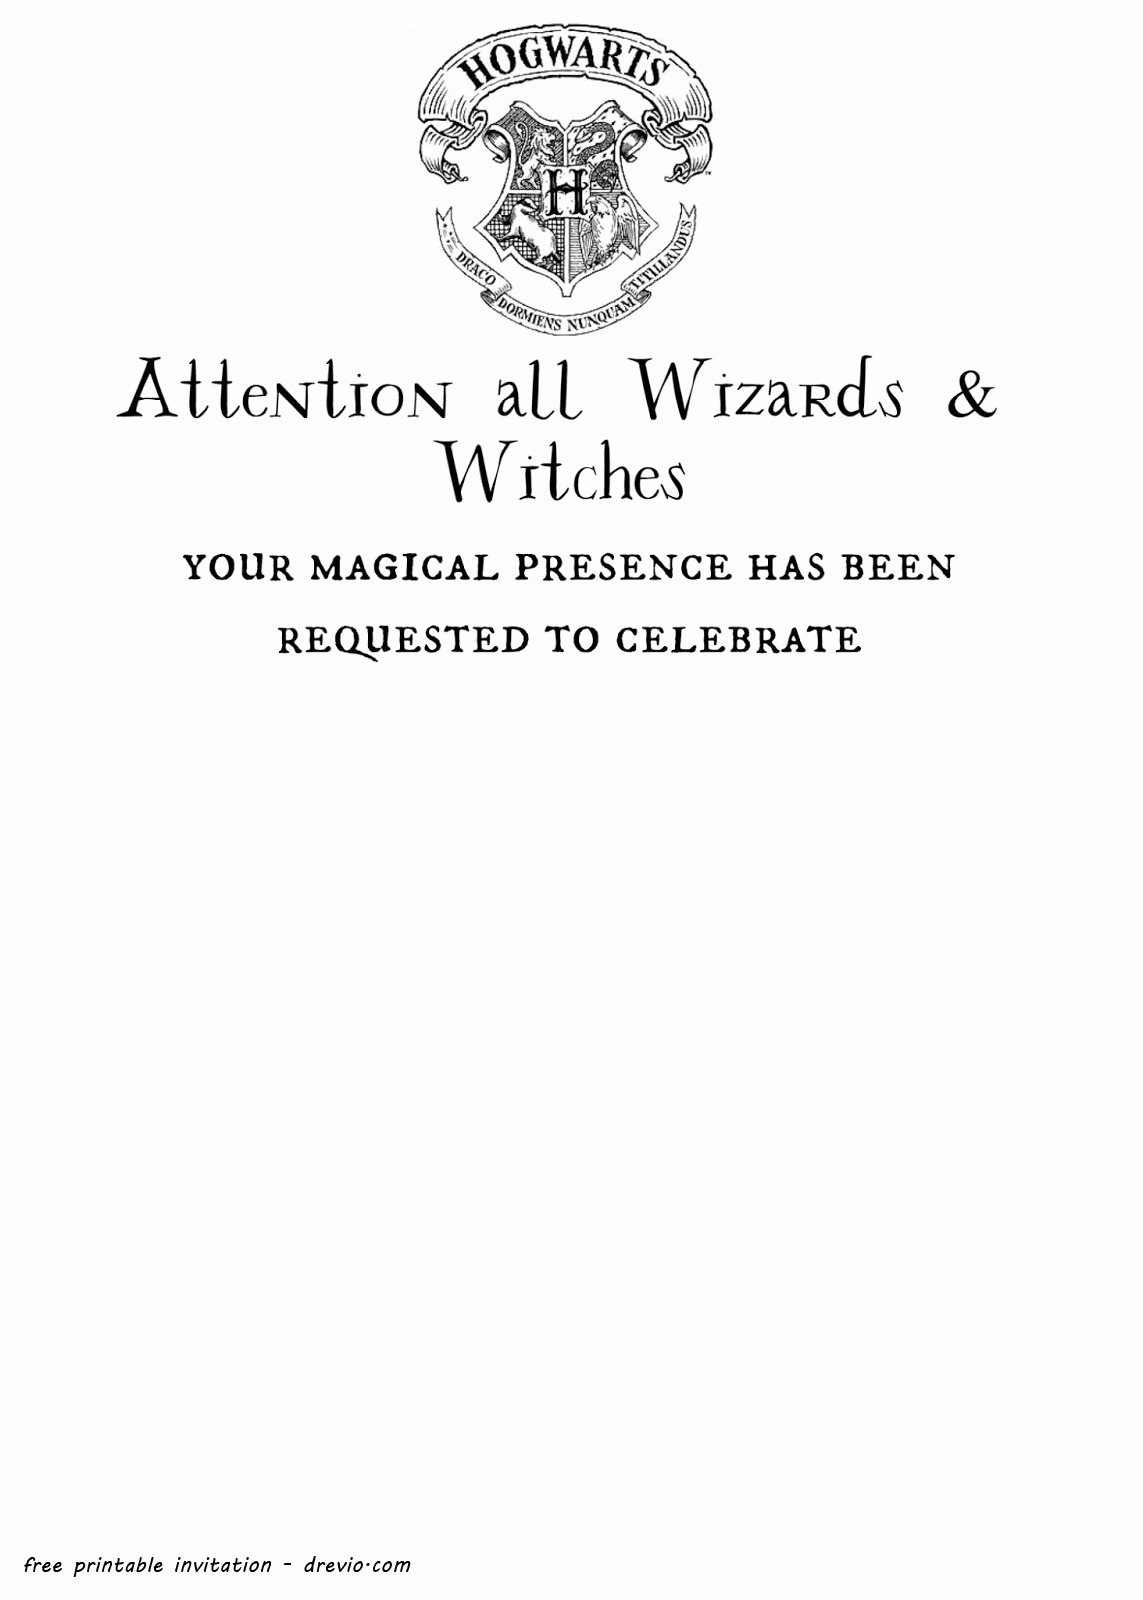 Free Printable Invitation Templates New Free Printable Harry Potter Hogwarts Invitation Template